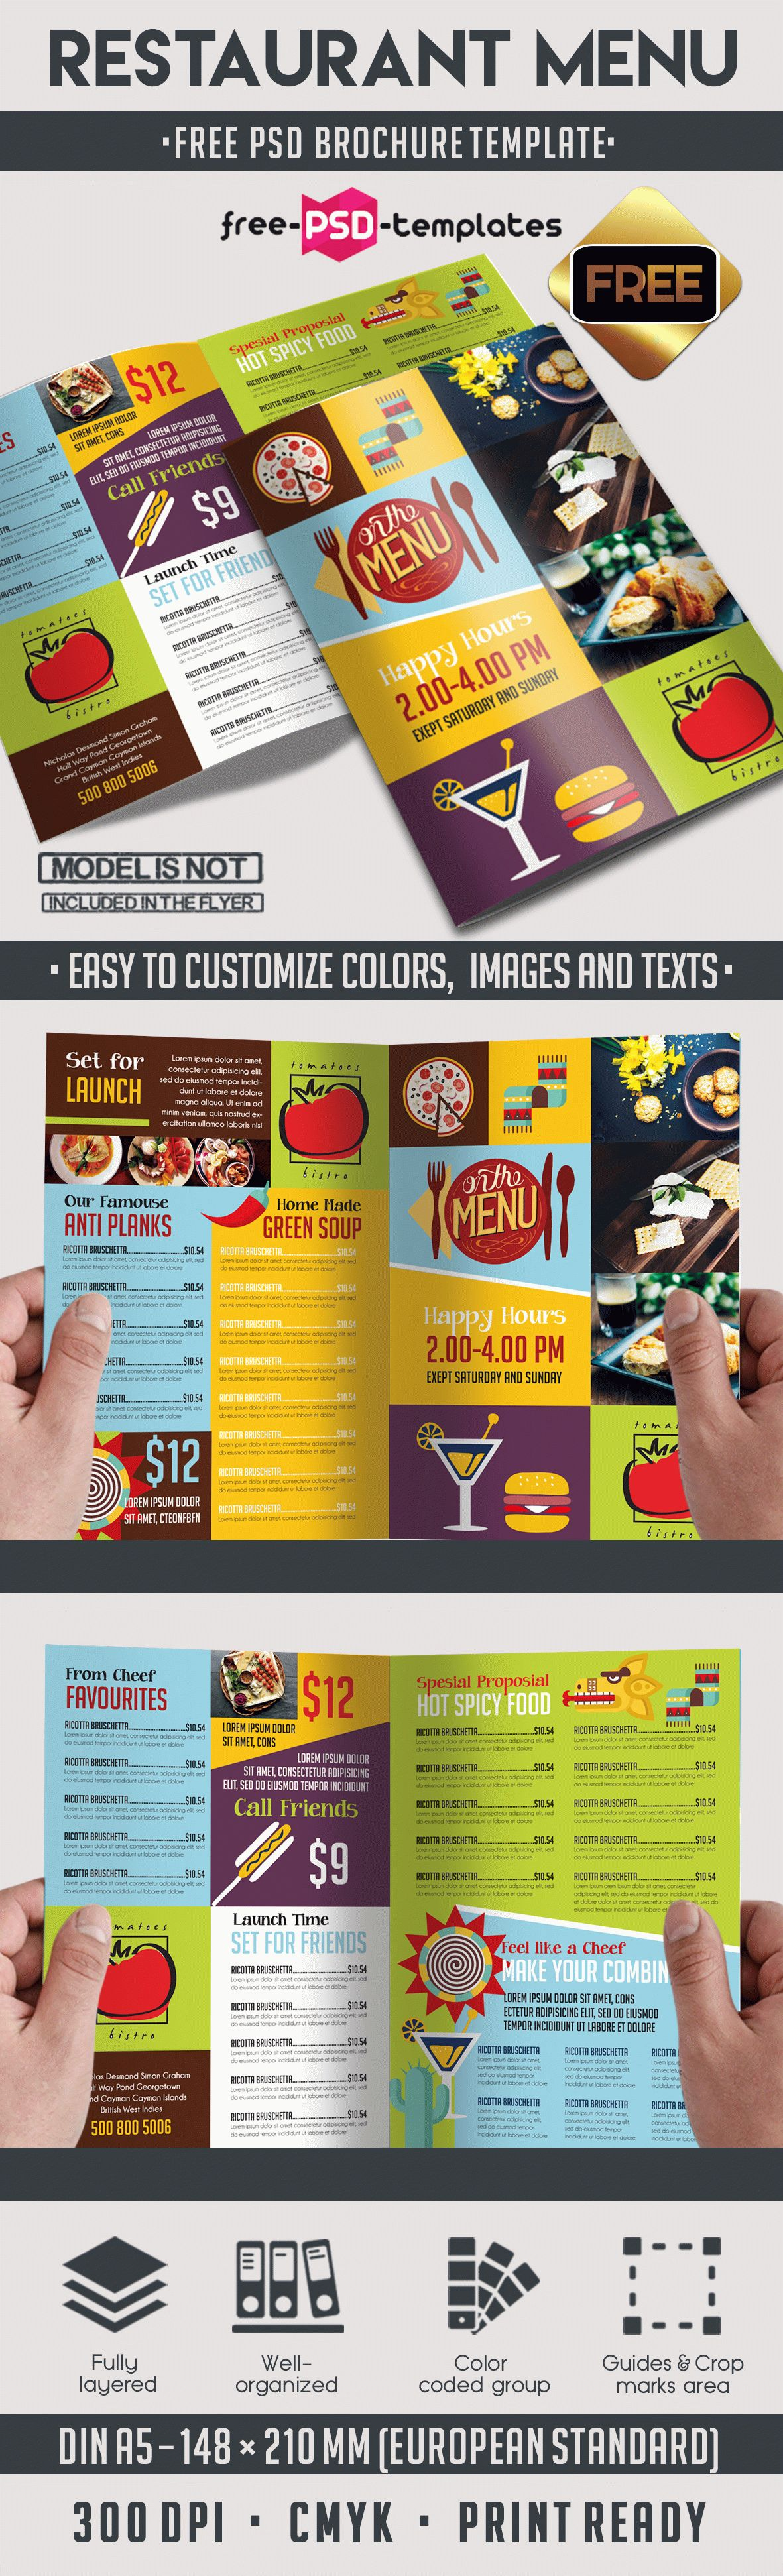 Menu free psd bi fold psd brochure template free psd for Psd template brochure